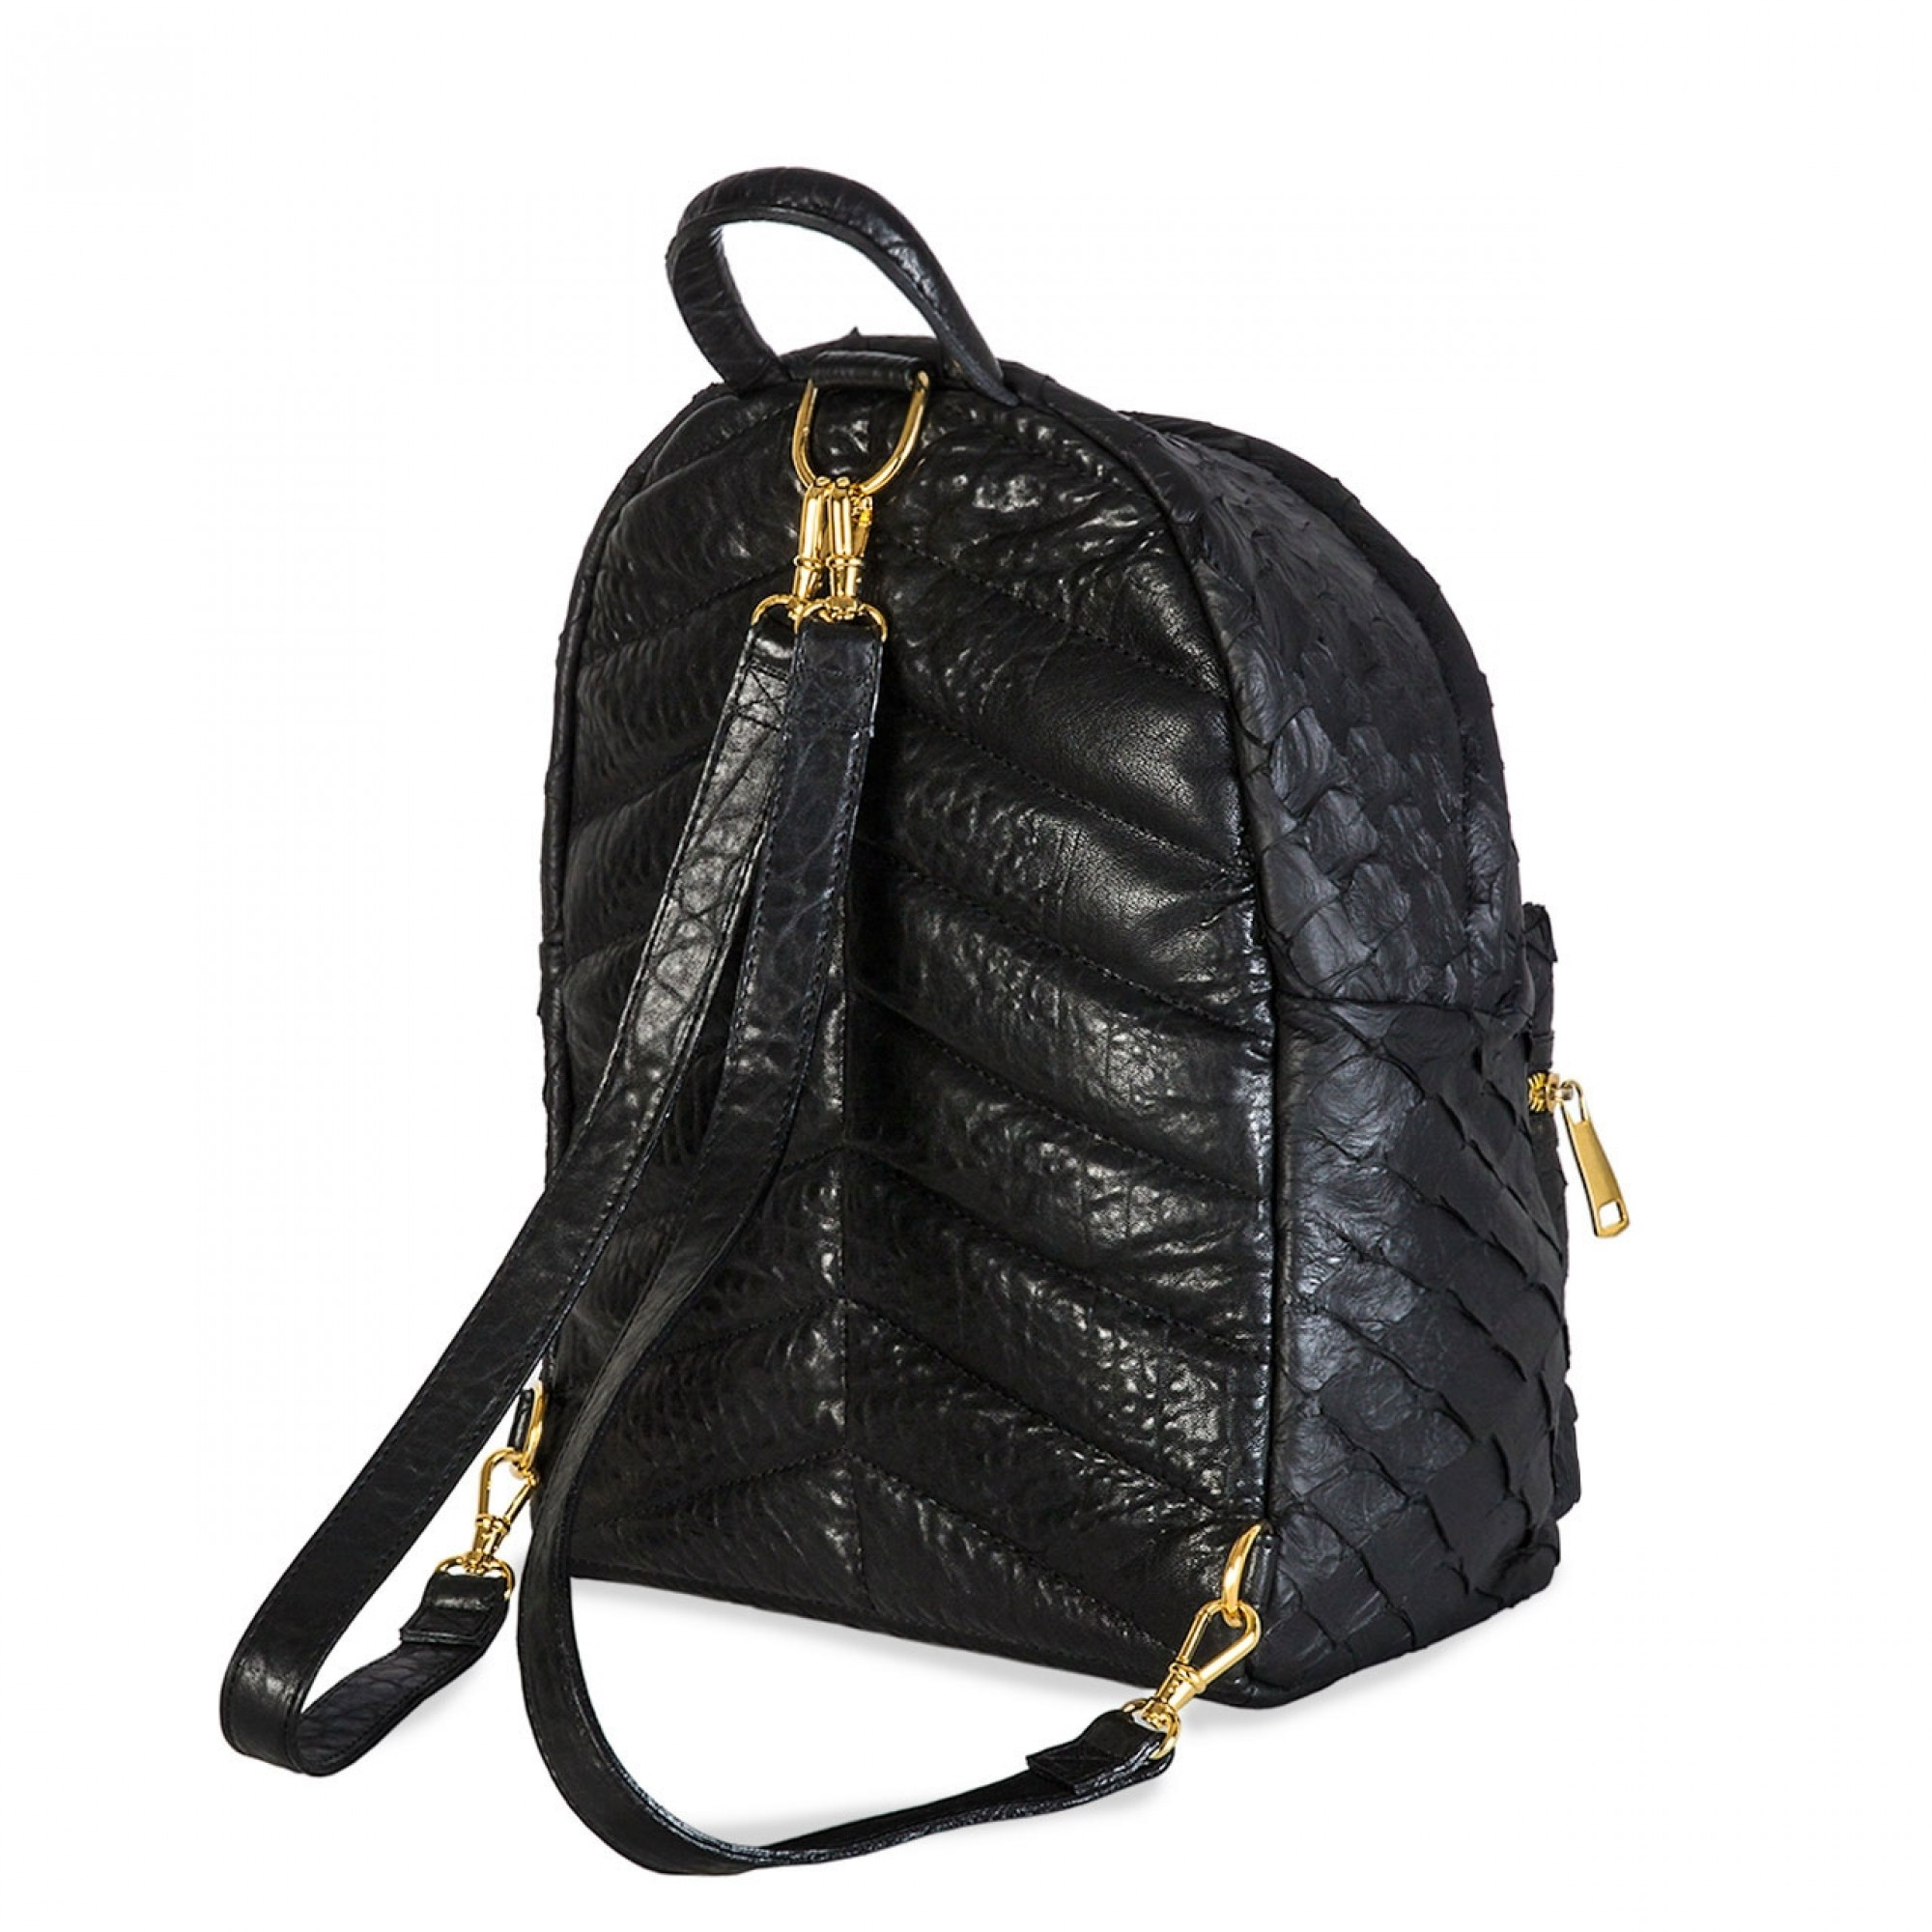 piracucu backpack